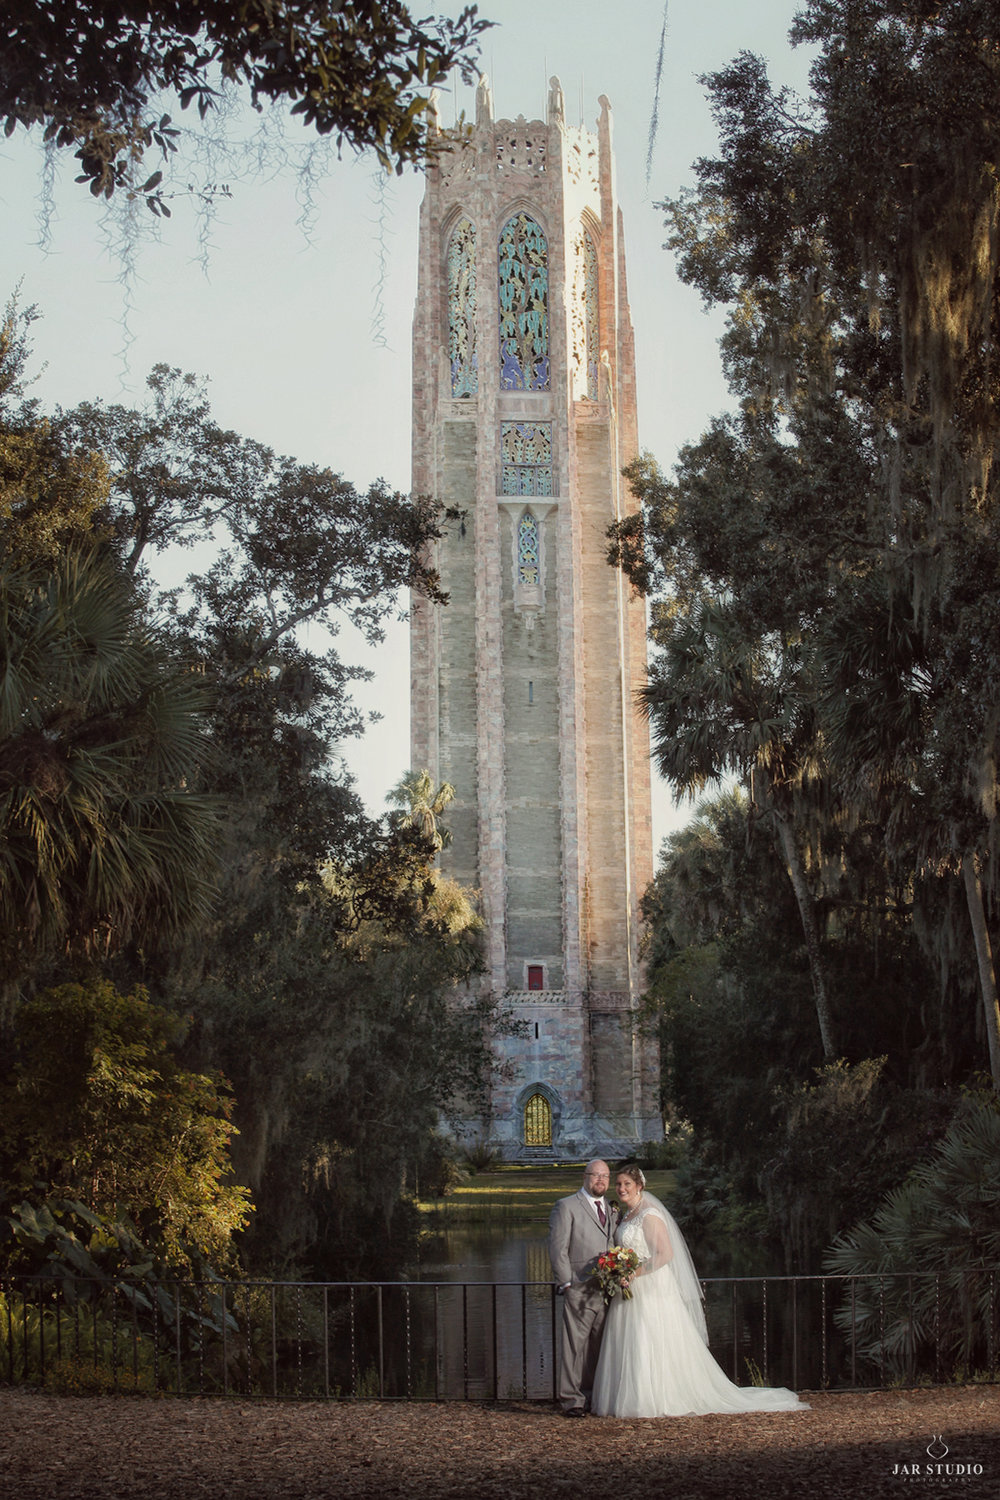 22-bok-tower-elegant-beautiful-wedding-venue-central-florida-jarstudio-photography.JPG